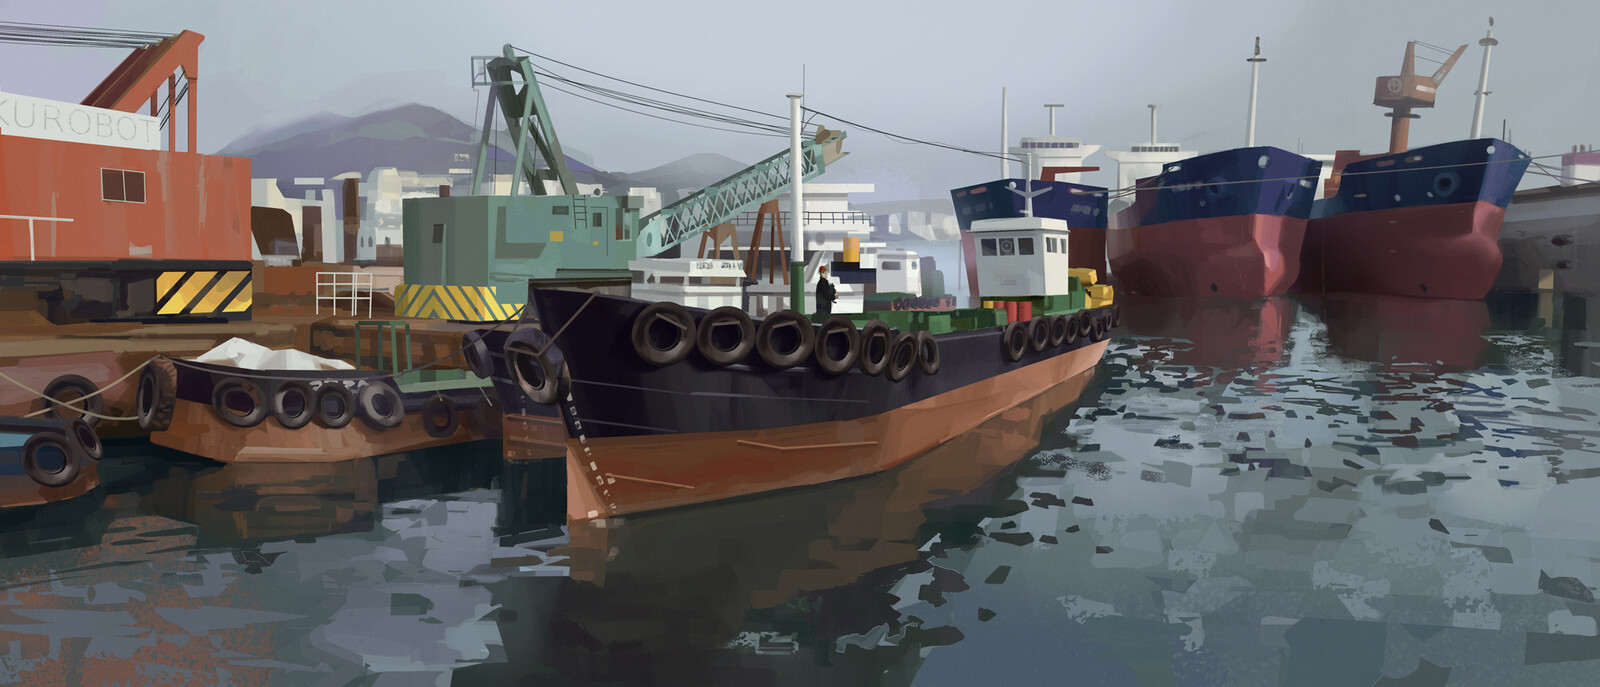 Korean Shipyard (+ process gif)